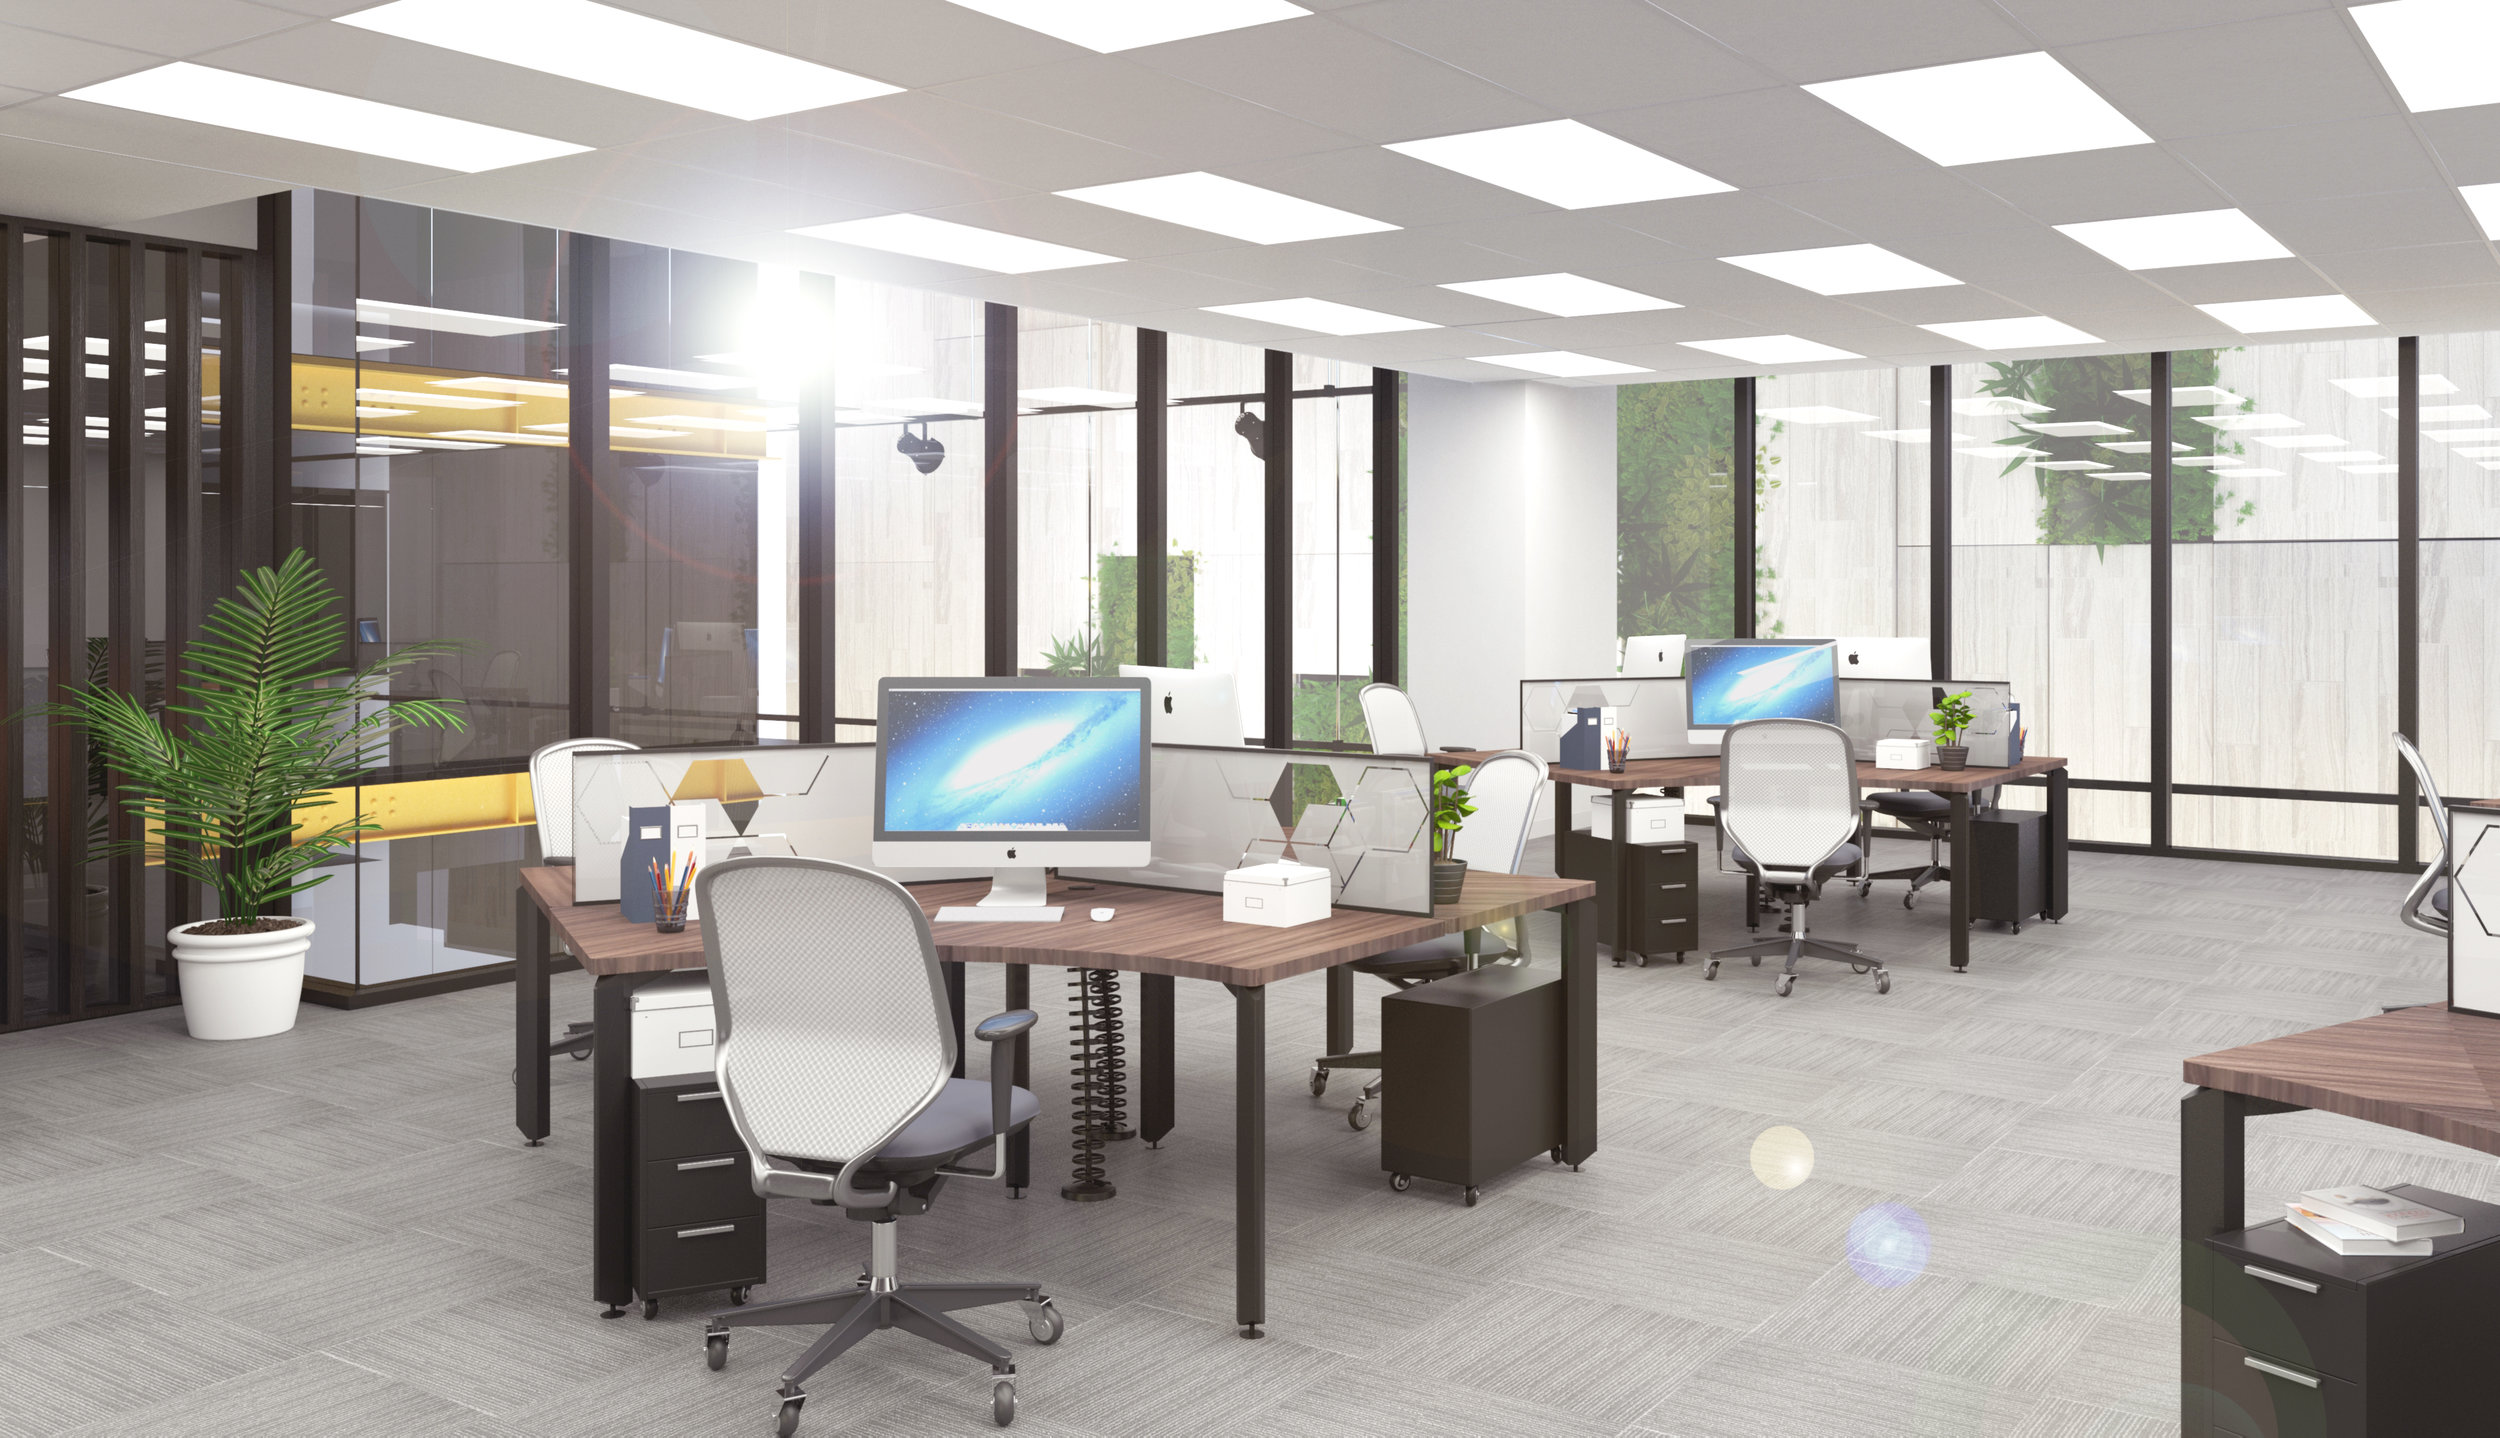 Copy of Office area with workstations and chairs.